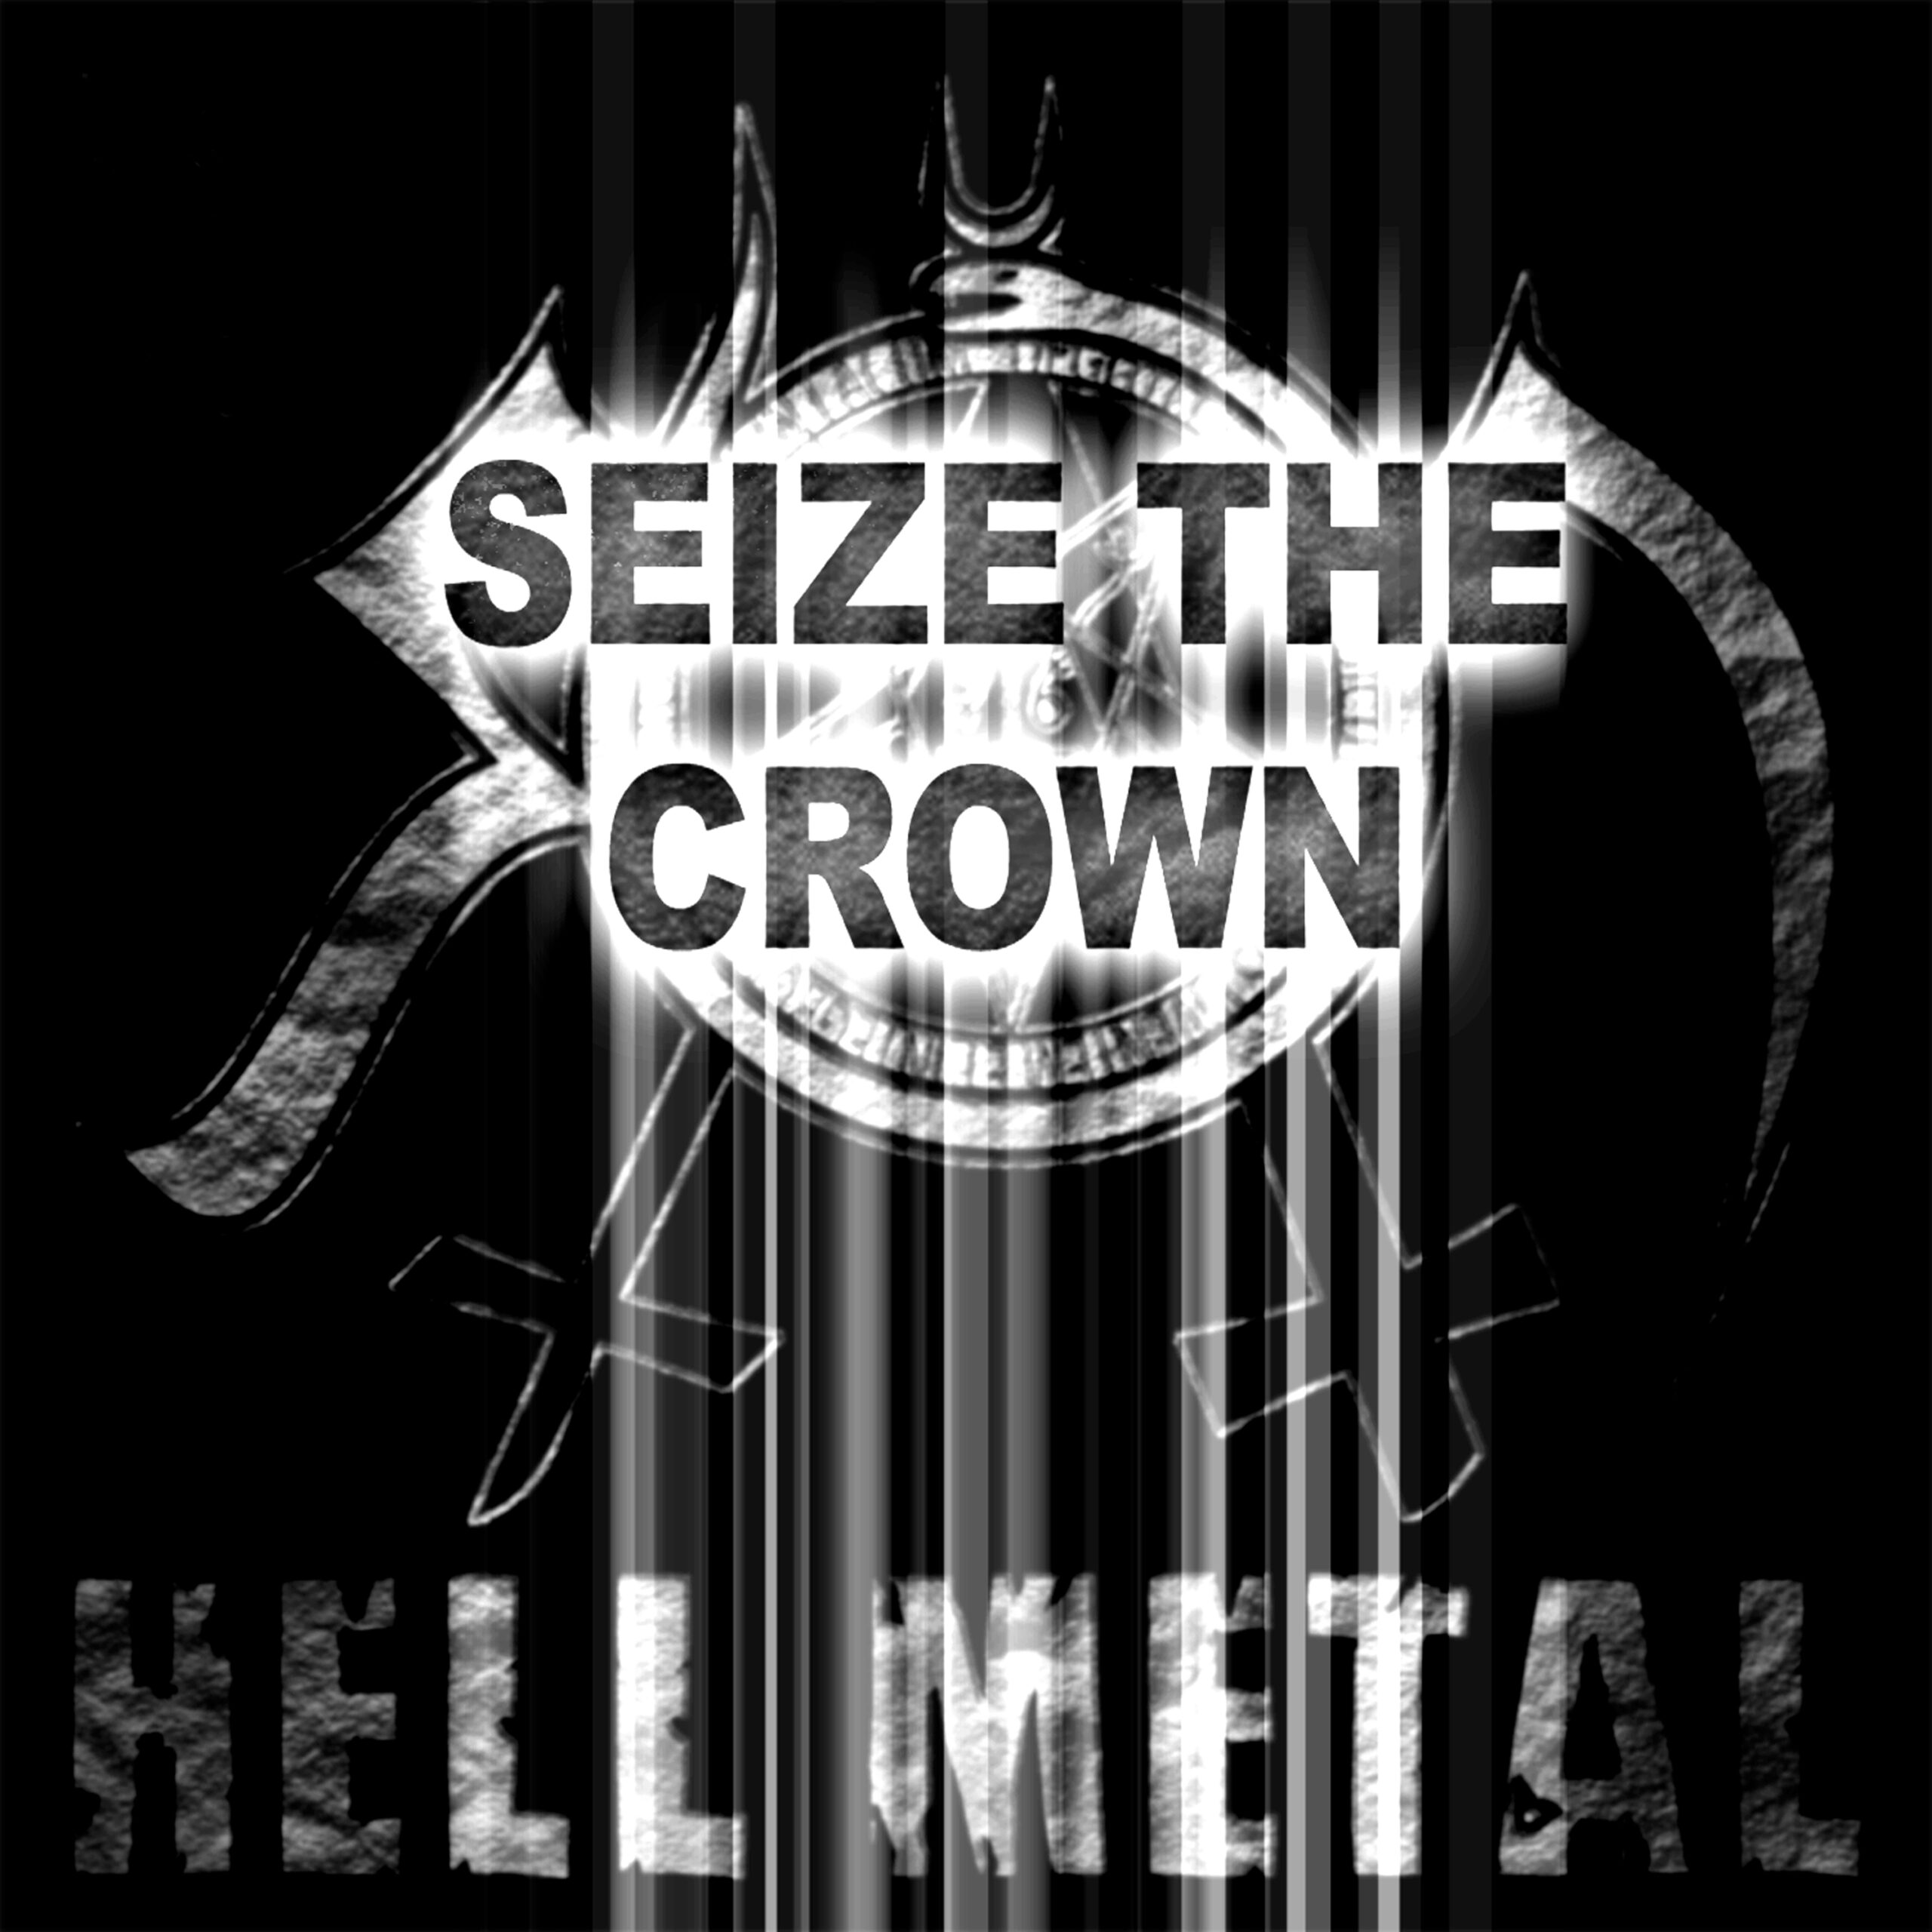 Seize the Crown release imminent!